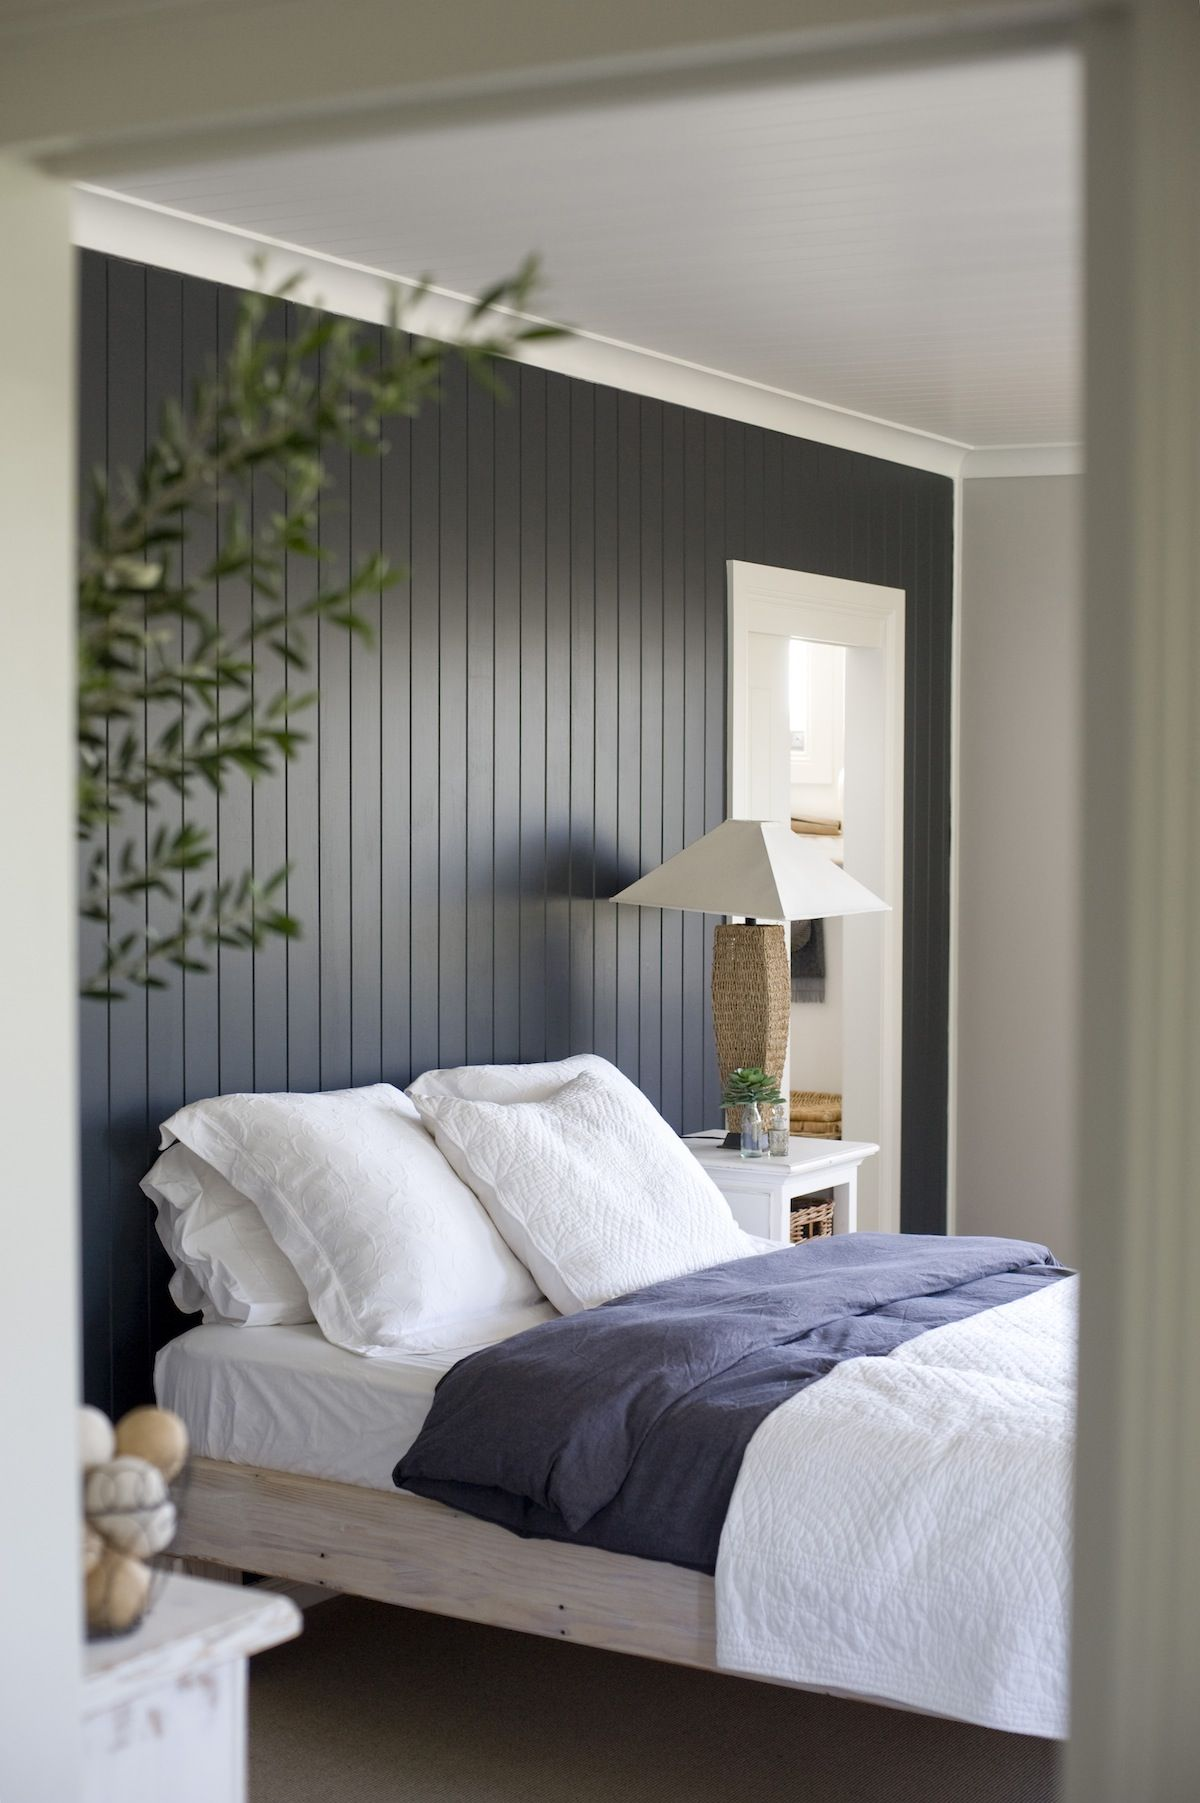 Why We Love Painted Vertical Wood Paneling Home Bedroom